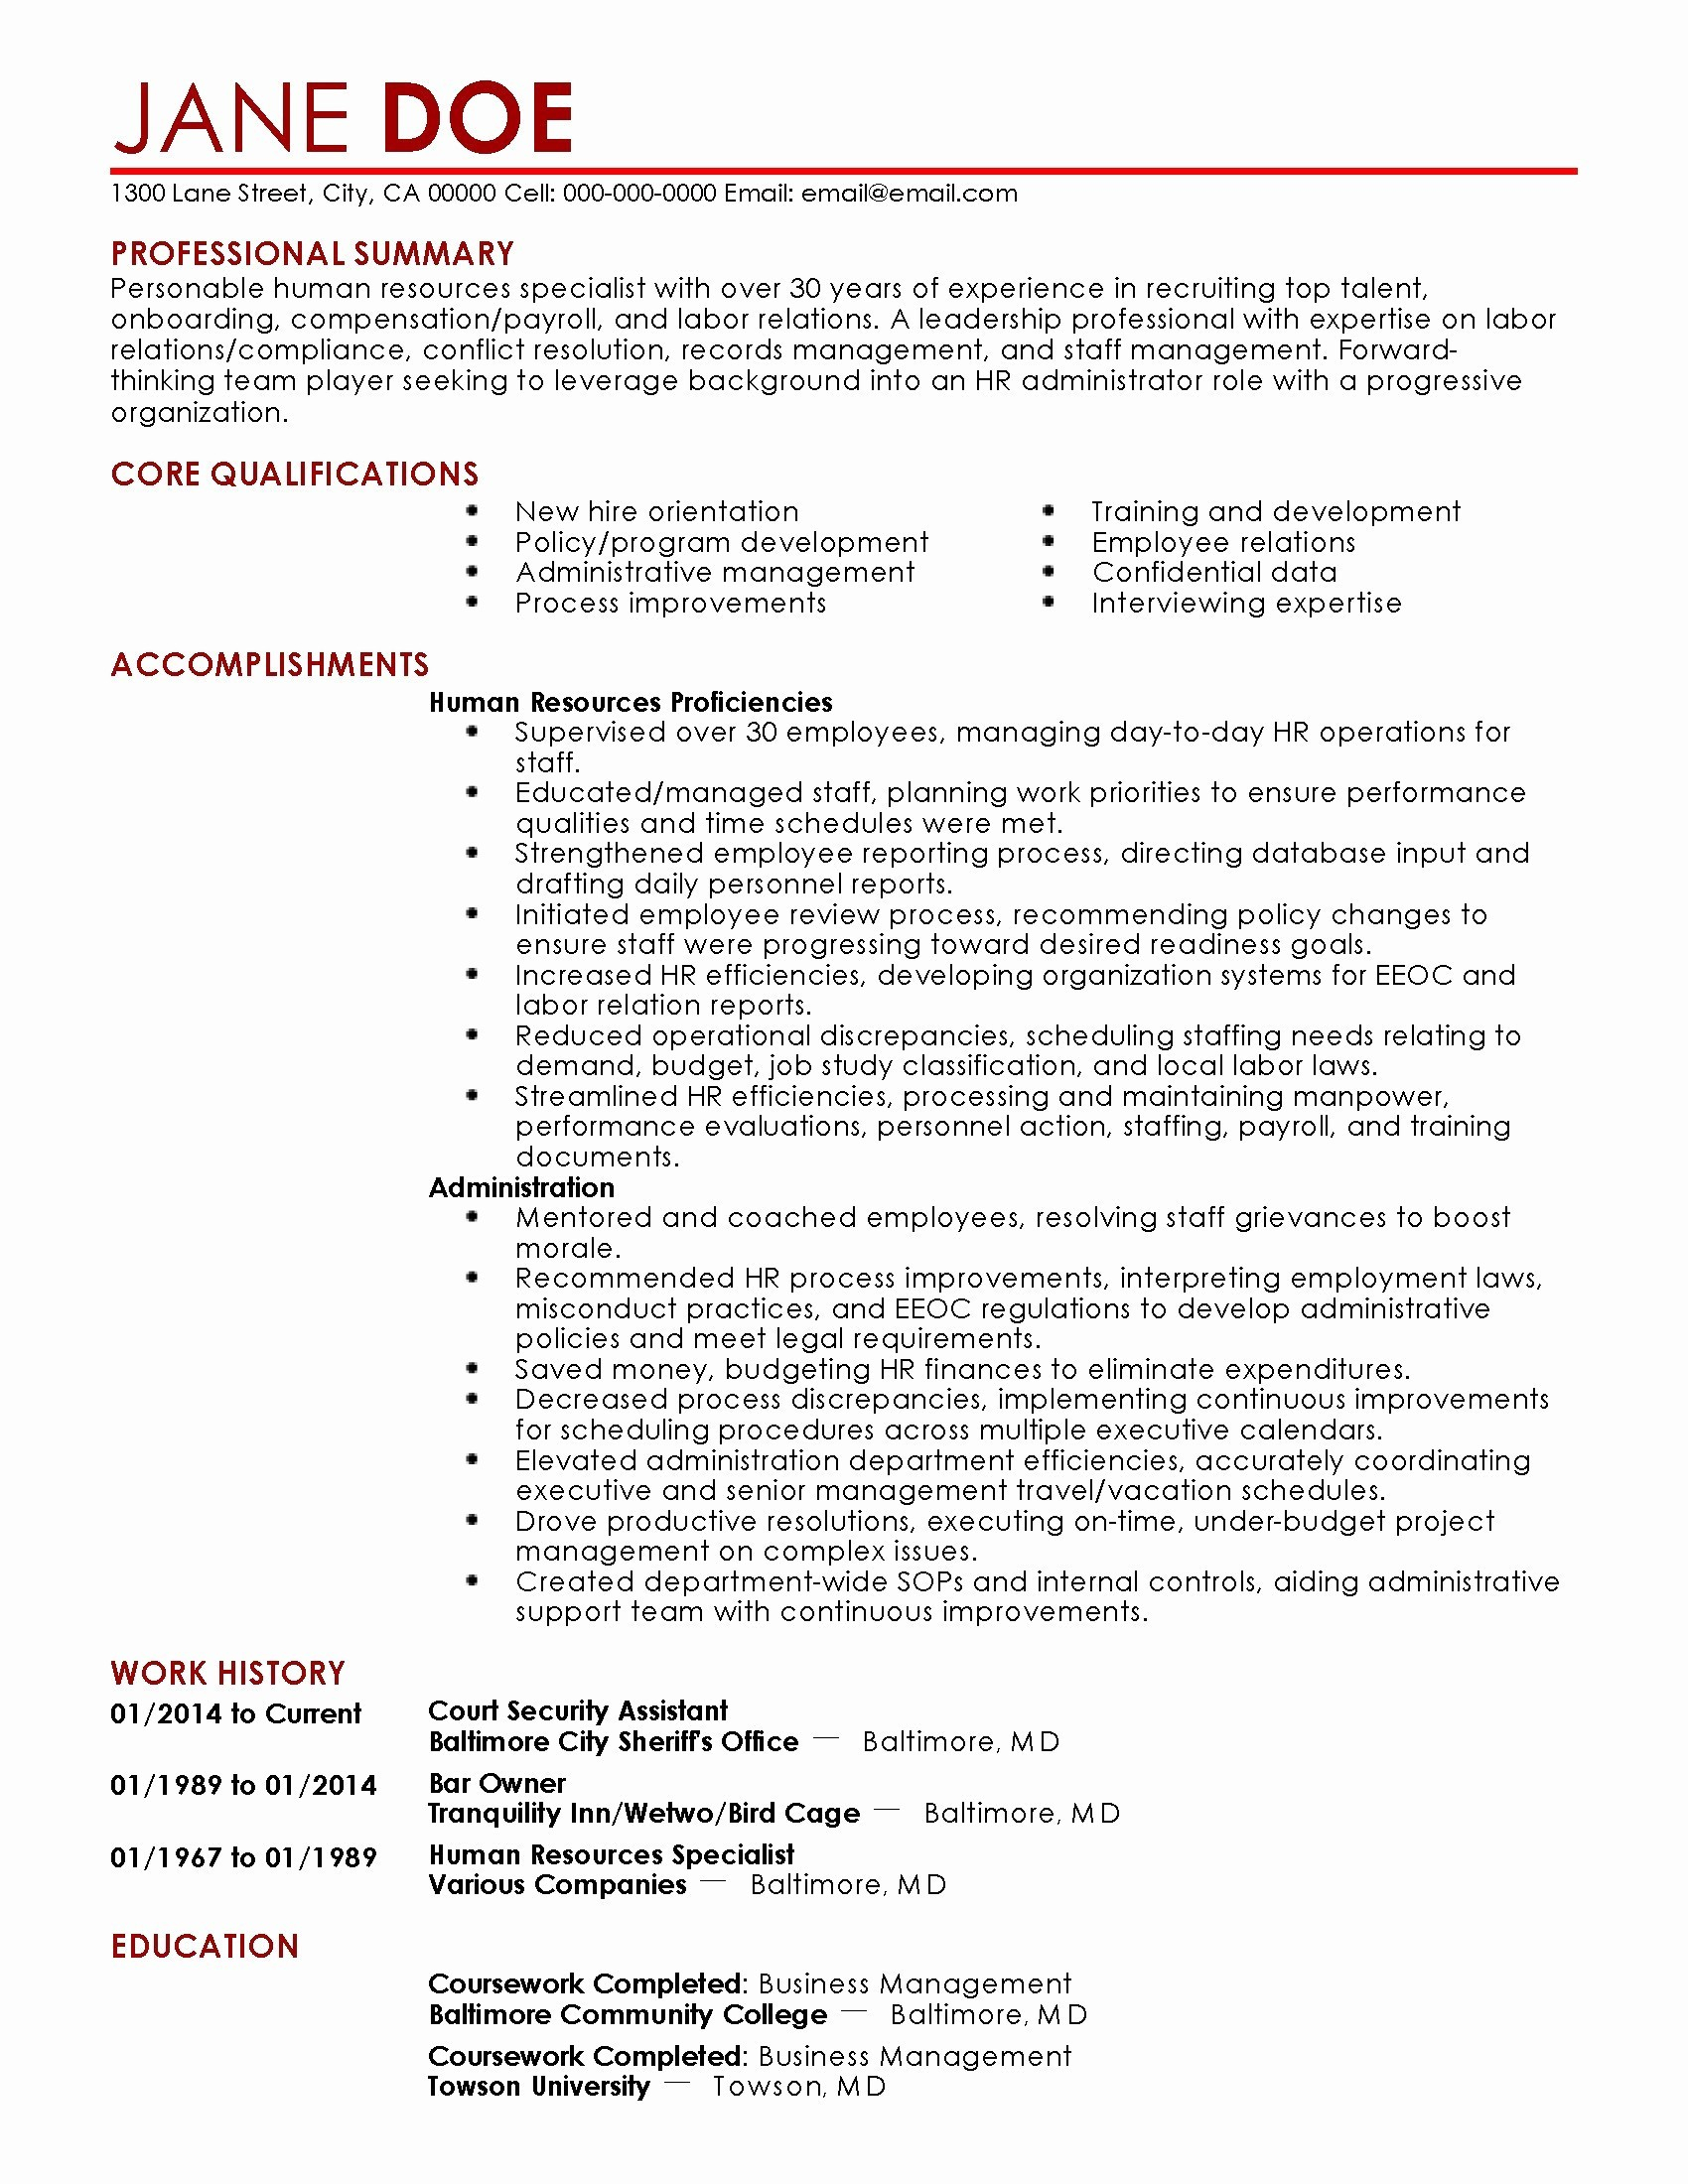 Ma Resume Template - Medical assistant Resume Template Elegant Dental assistant Resume